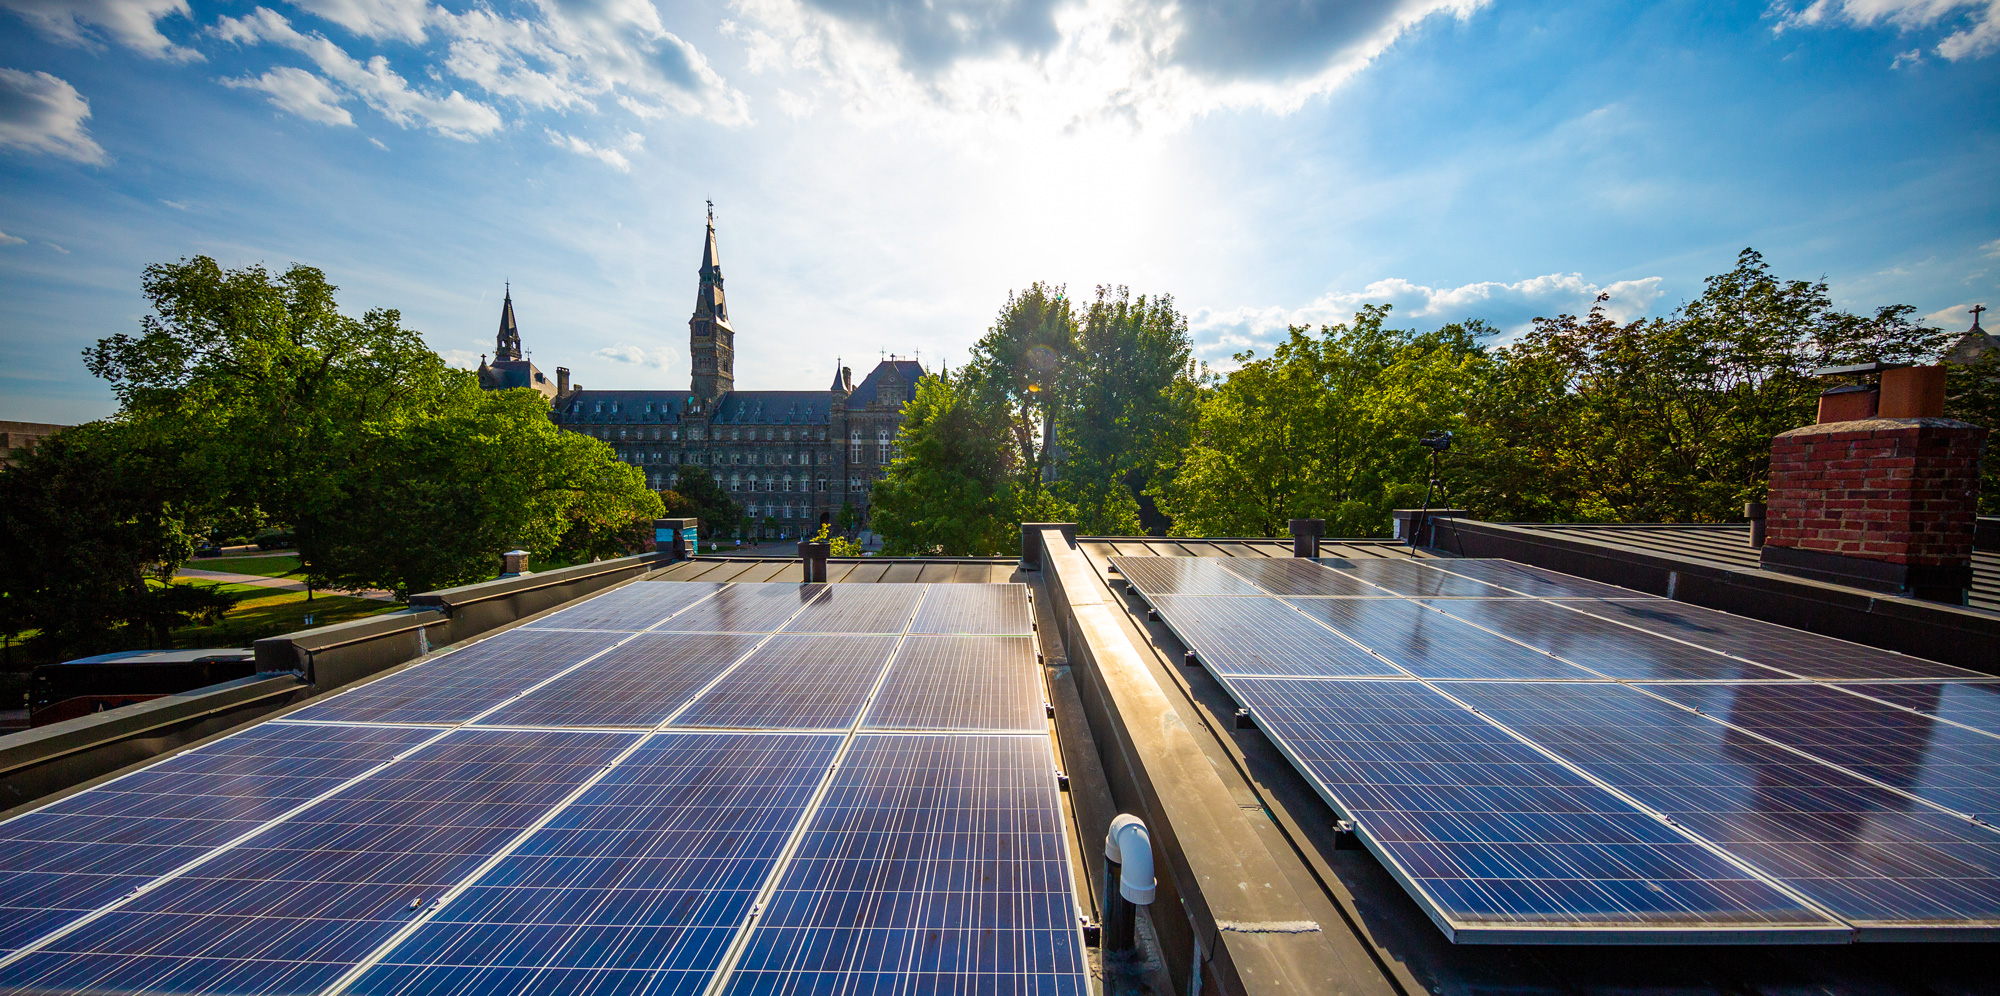 solar panels and georgetown campus in the distance